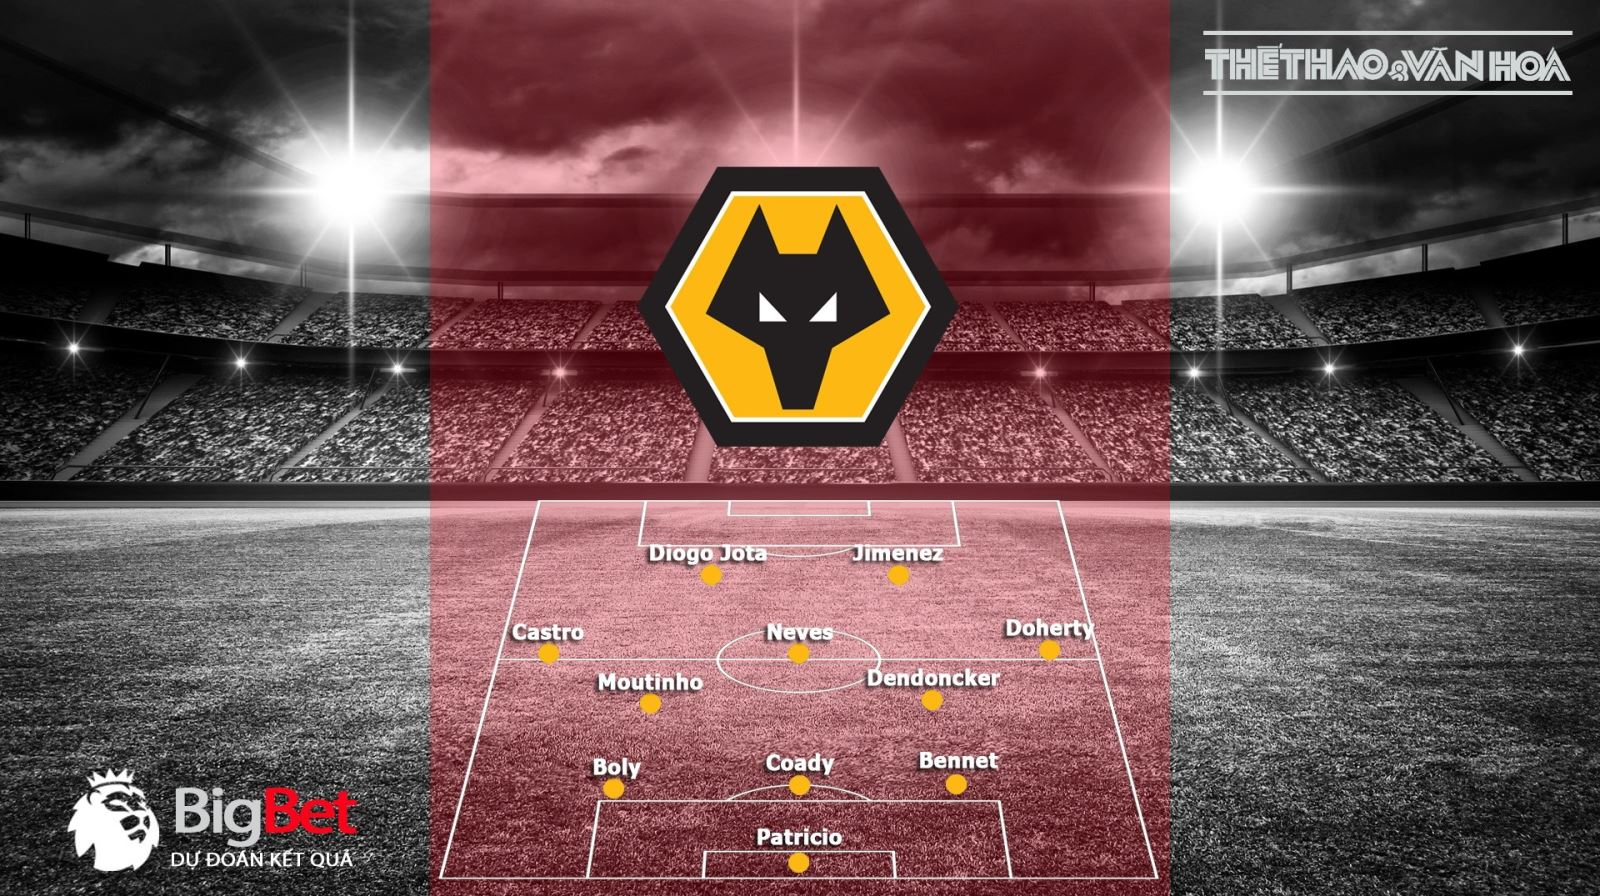 Liverpool vs Wolves, Liverpool, Wolves, trực tiếp bóng đá, trực tiếp Liverpool vs Wolves, Ngoại hạng Anh, xem trực tiếp Liverpool vs Wolves ở đâu, soi kèo Liverpool vs Wolves